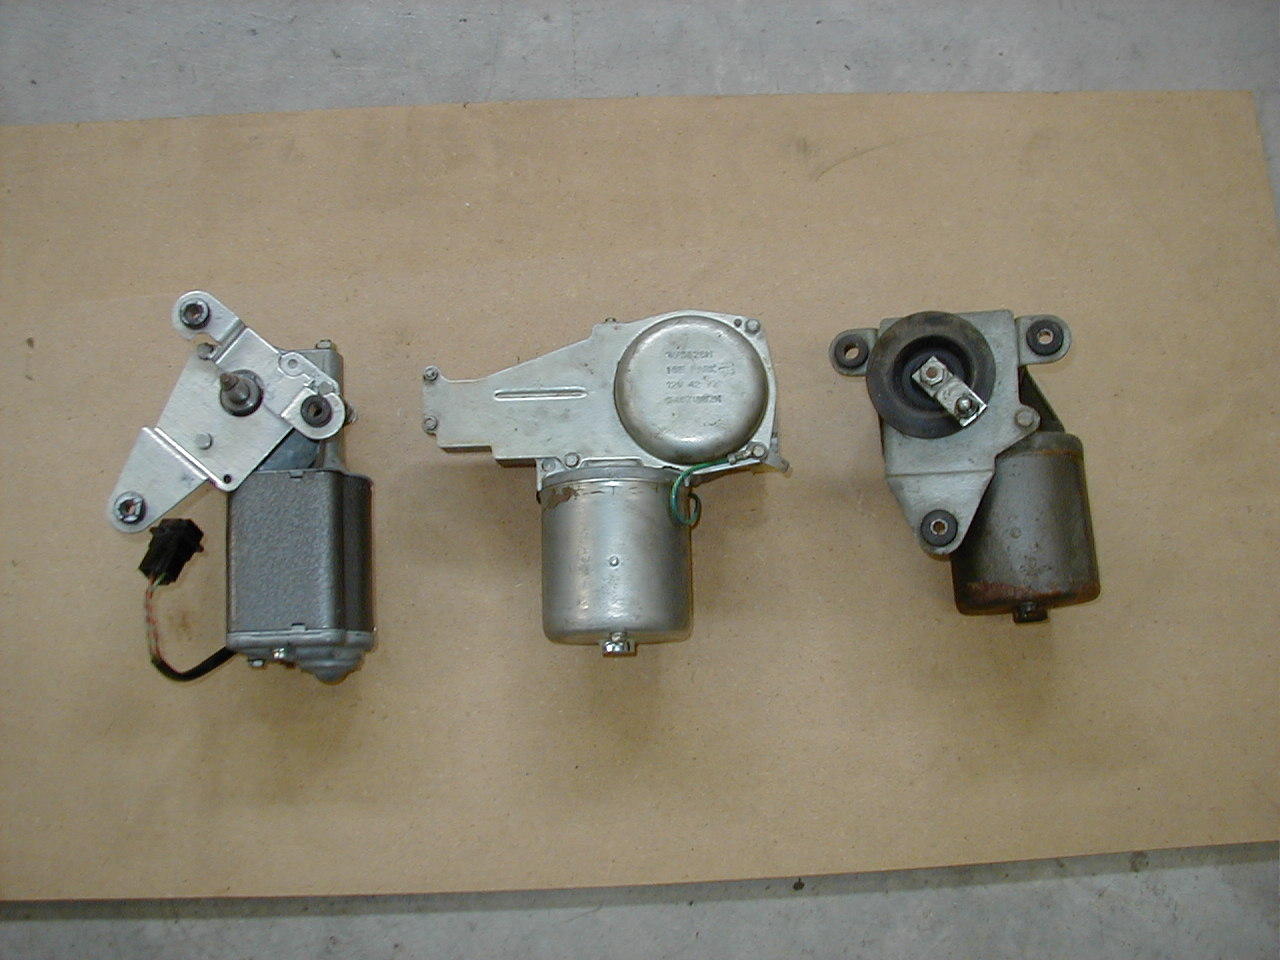 different types of wiper motors as used in the history of the wiper system